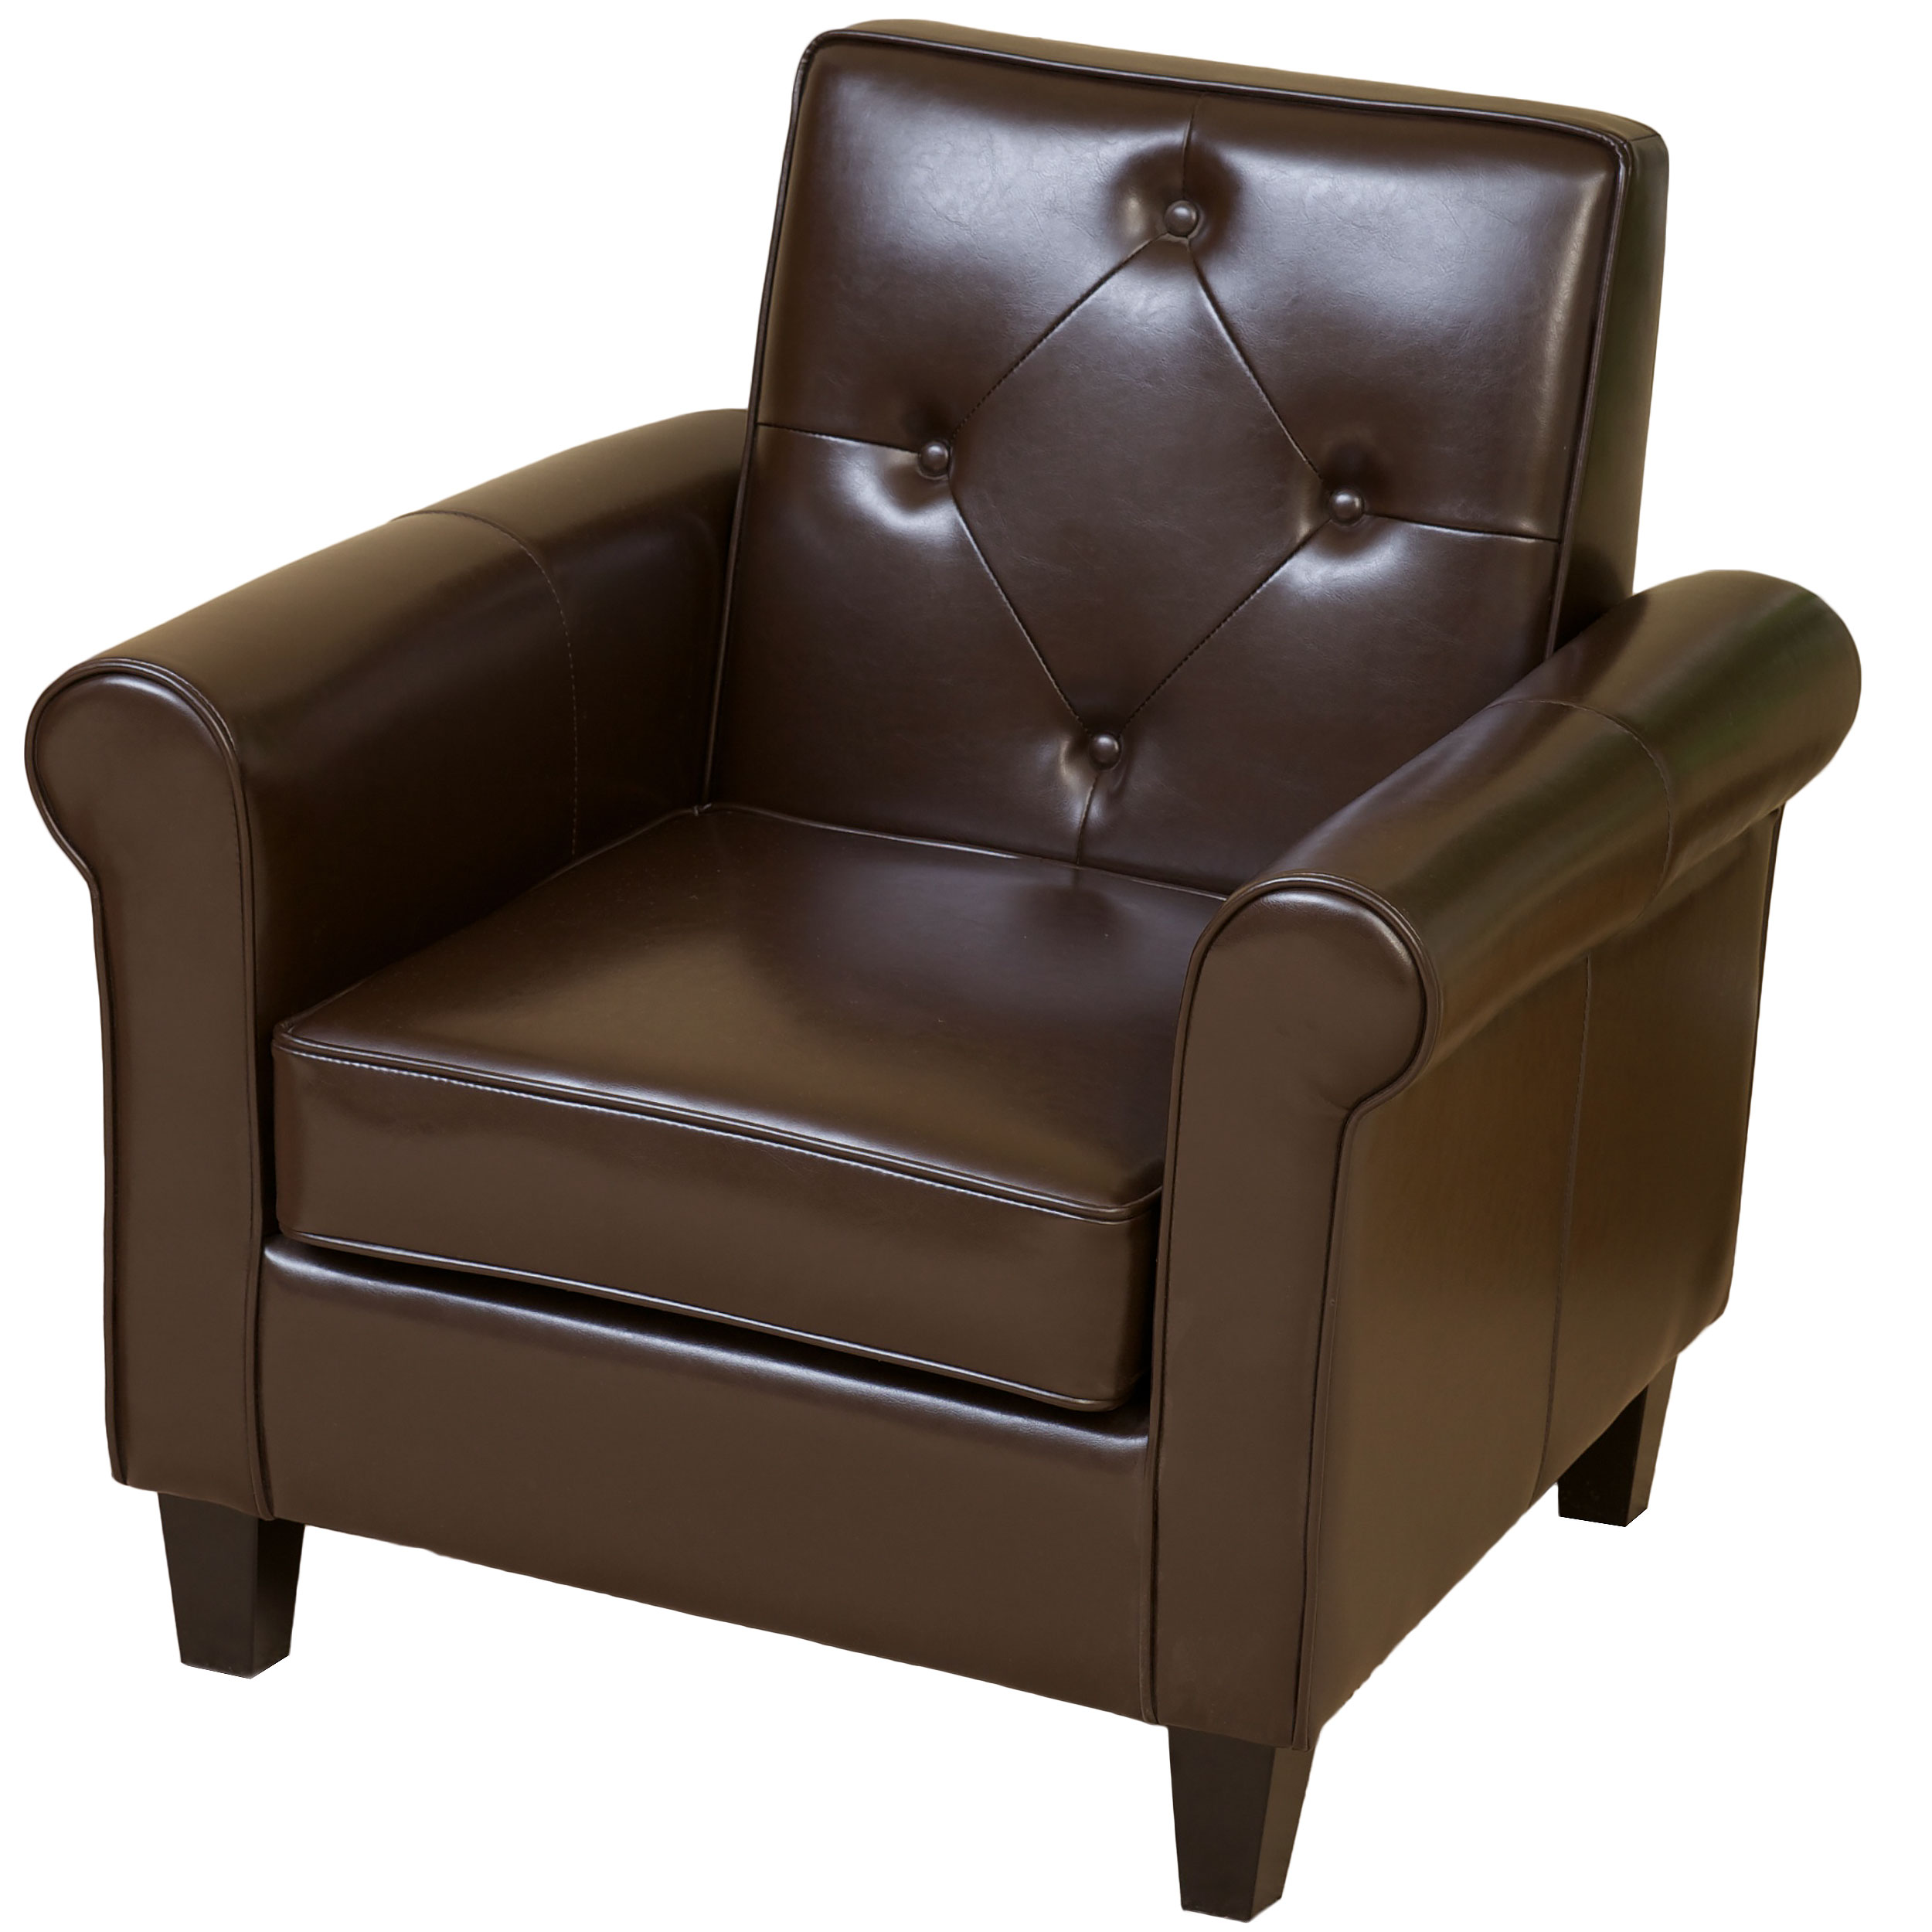 Oakly Tufted Brown Bonded Leather Club Chair